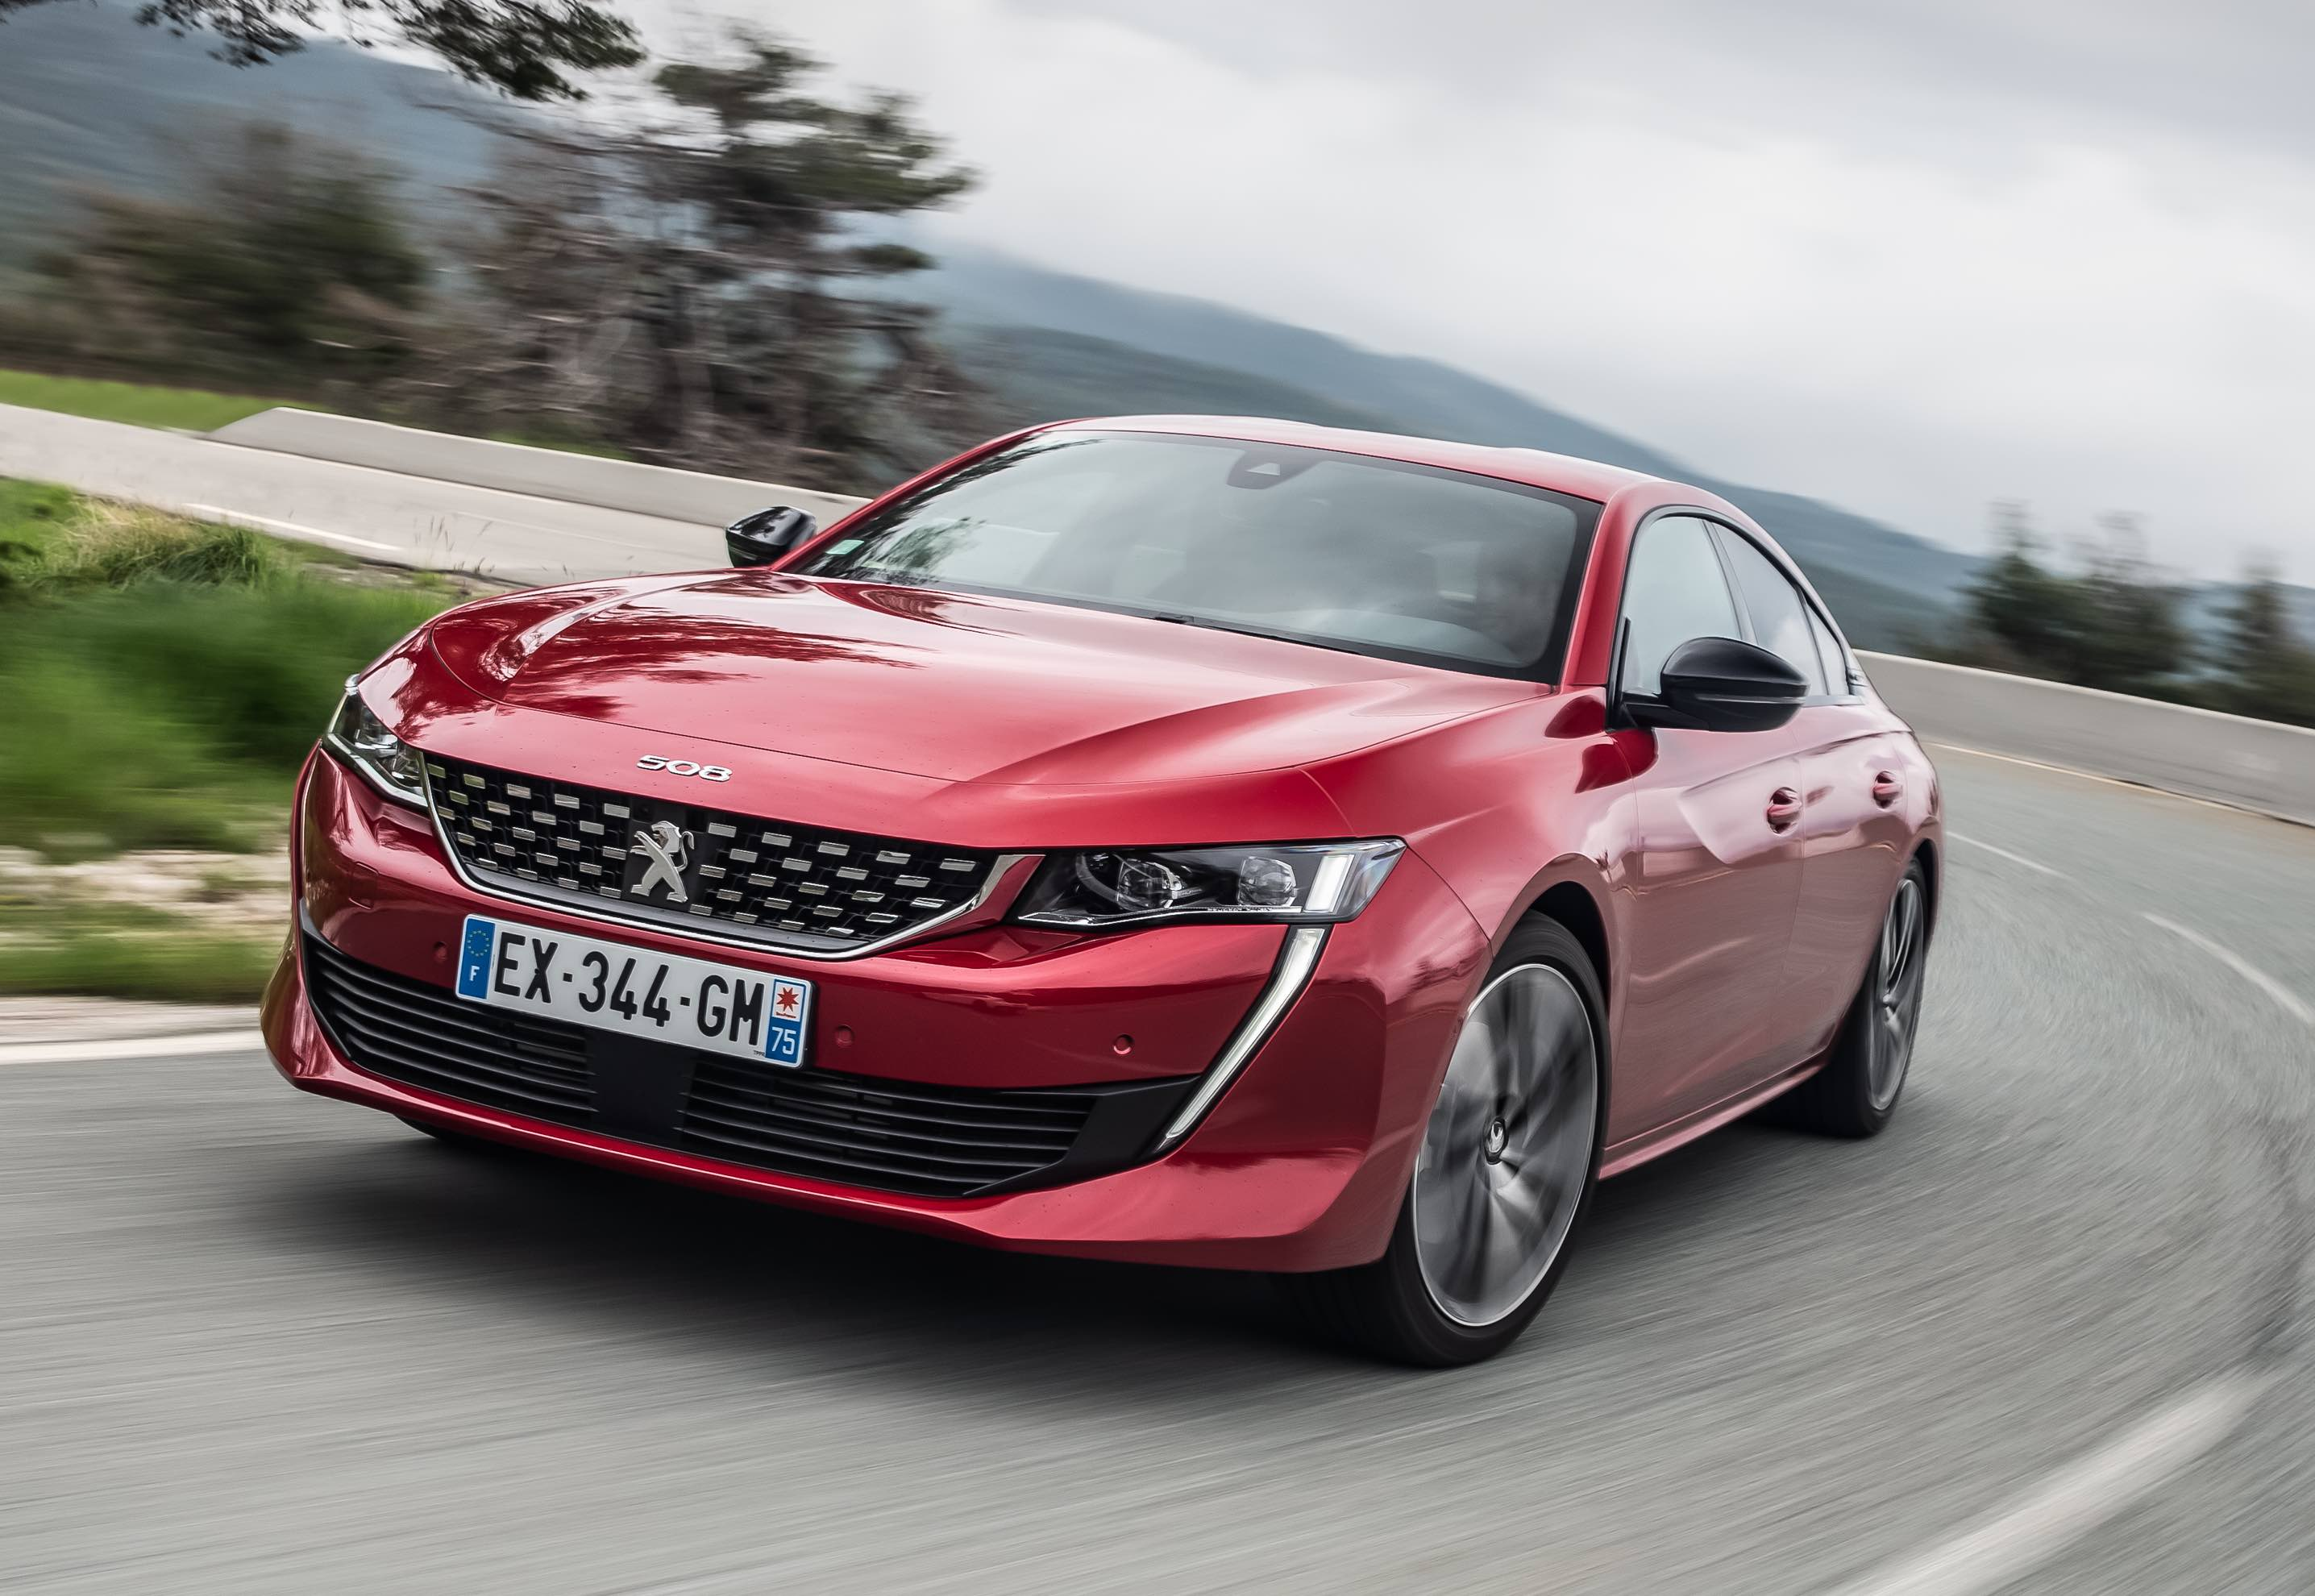 Peugeot shows style and substance in three new models